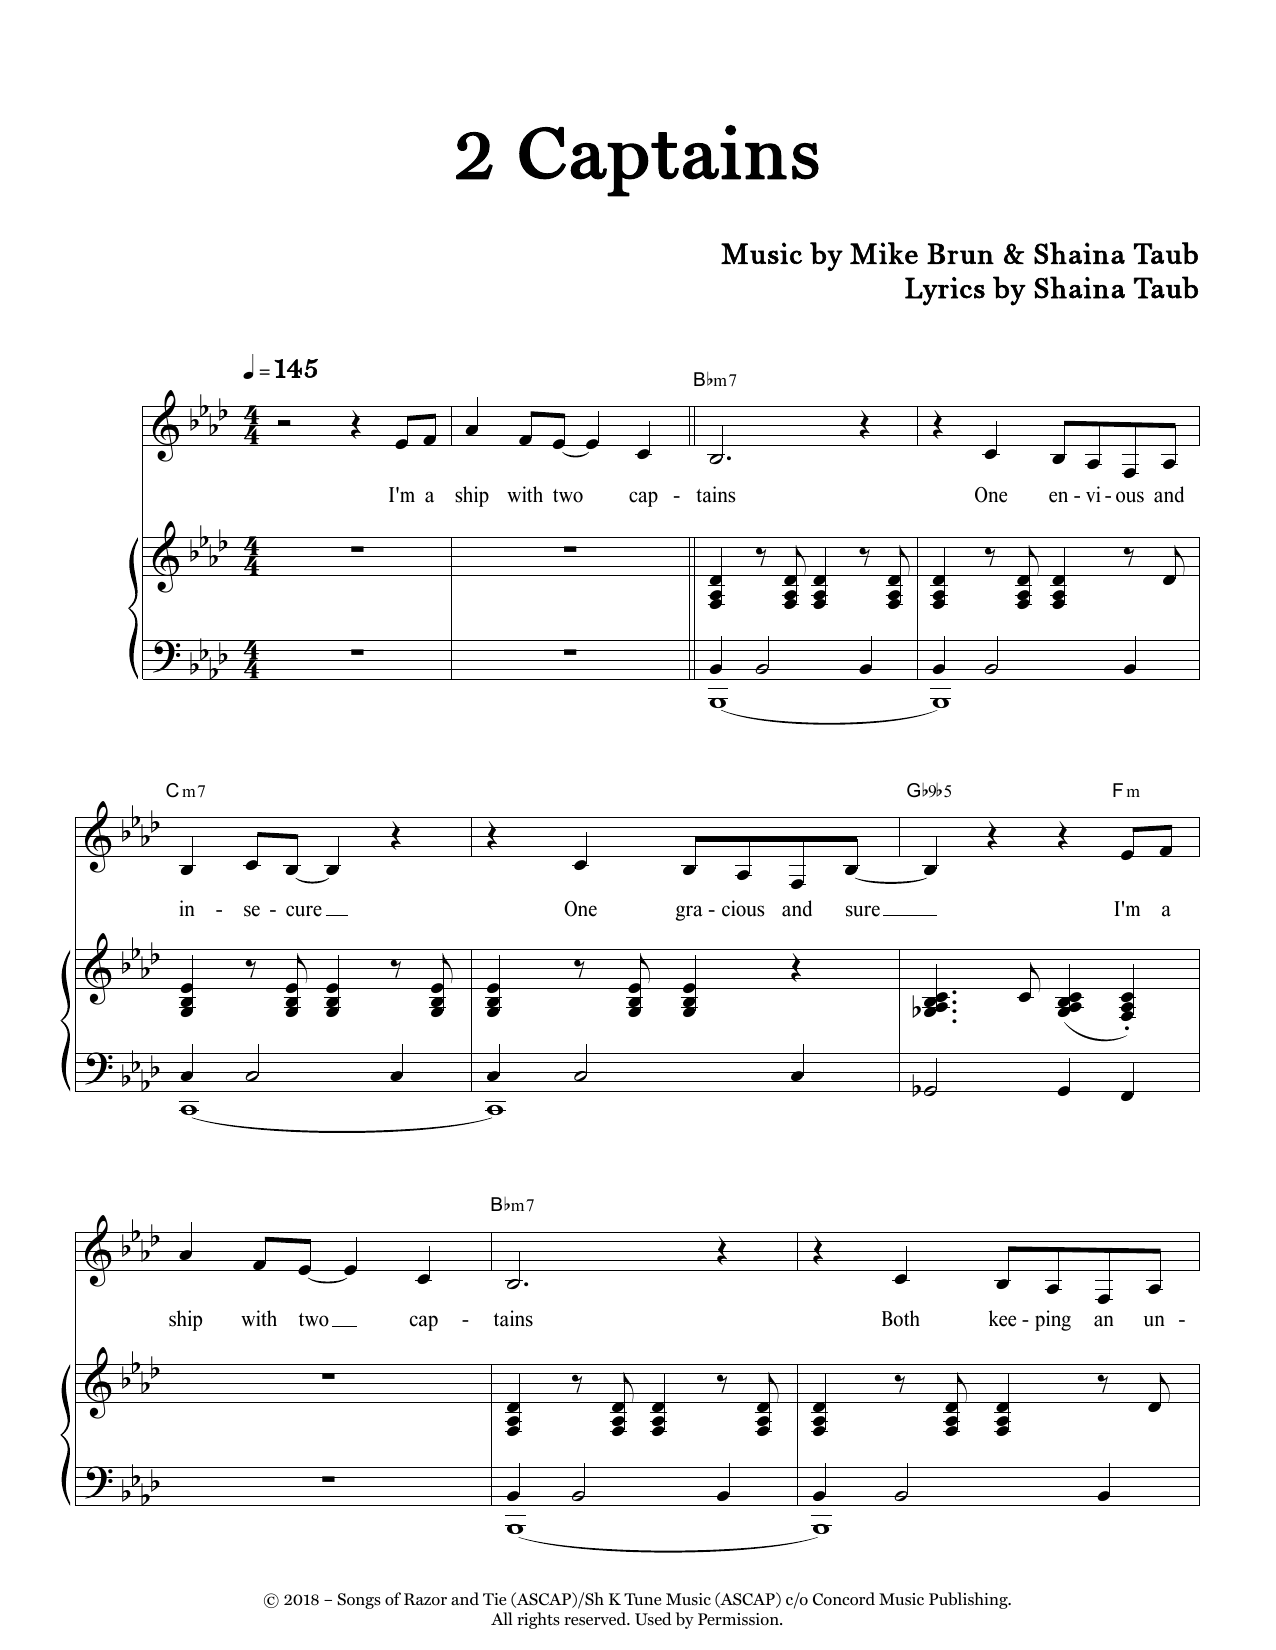 Shaina Taub 2 Captains sheet music notes and chords. Download Printable PDF.